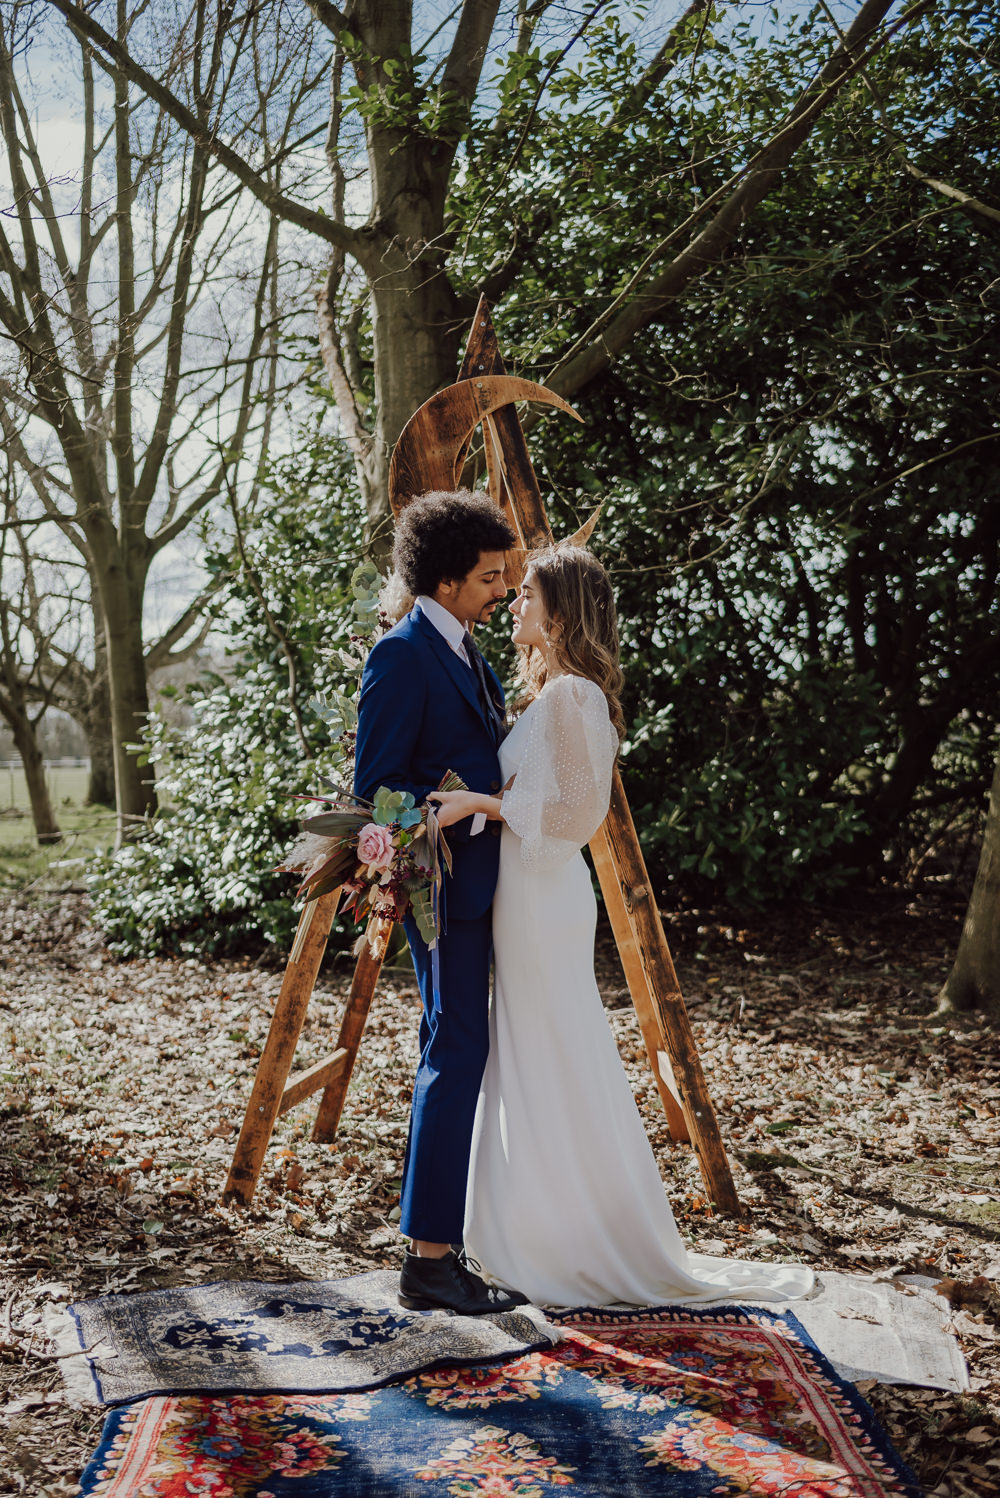 Navy Gold Wedding Ideas Gina Fernandes Photography Crescent Moon Celestial Backdrop Triangle Wooden Arch Ceremony Aisle